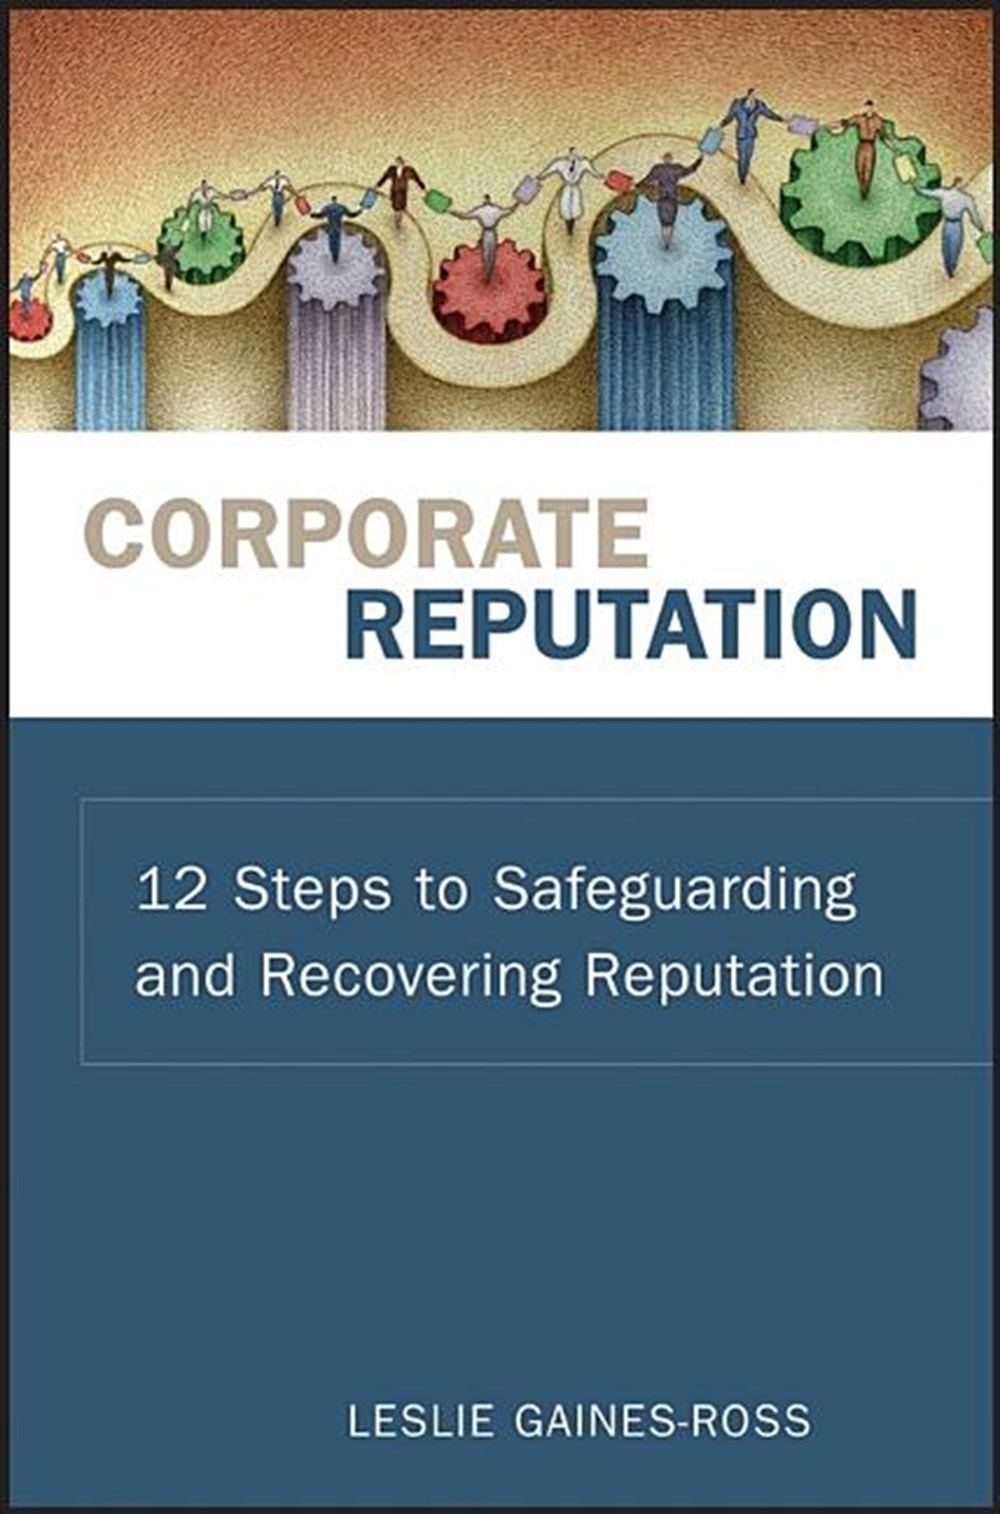 Corporate Reputation 12 Steps to Safeguarding and Recovering Reputation